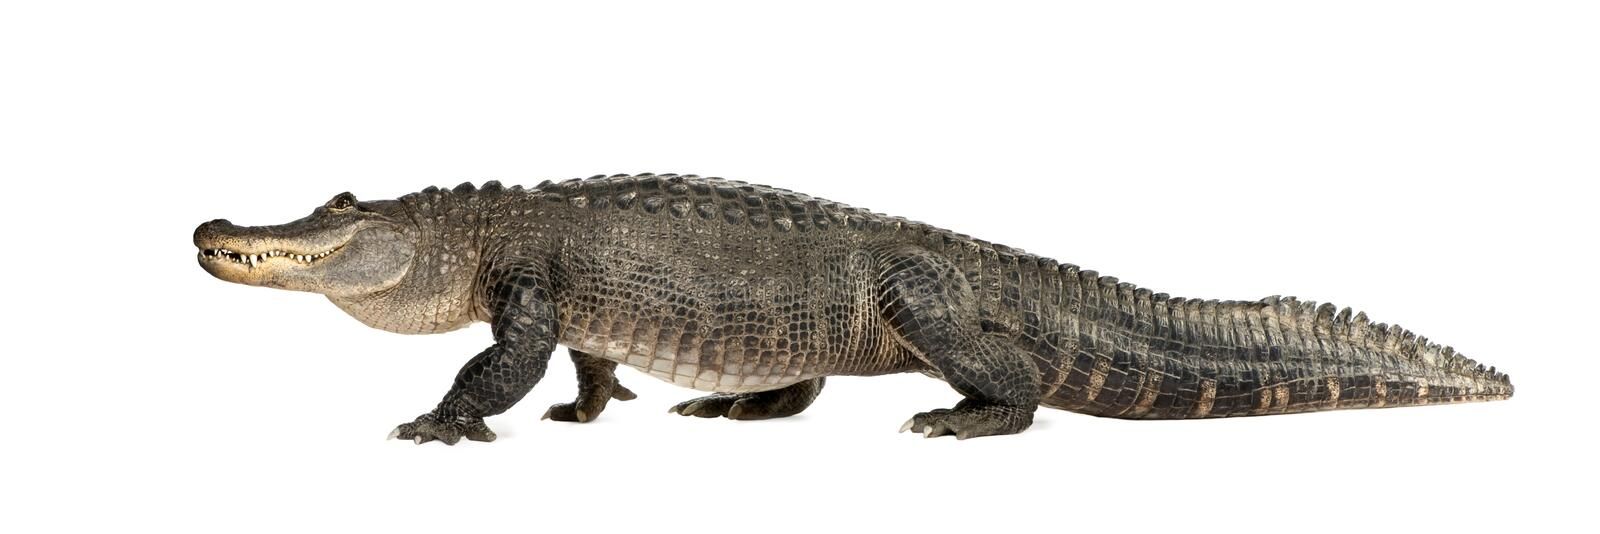 American Alligator (30 years) - Alligator mississi stock images